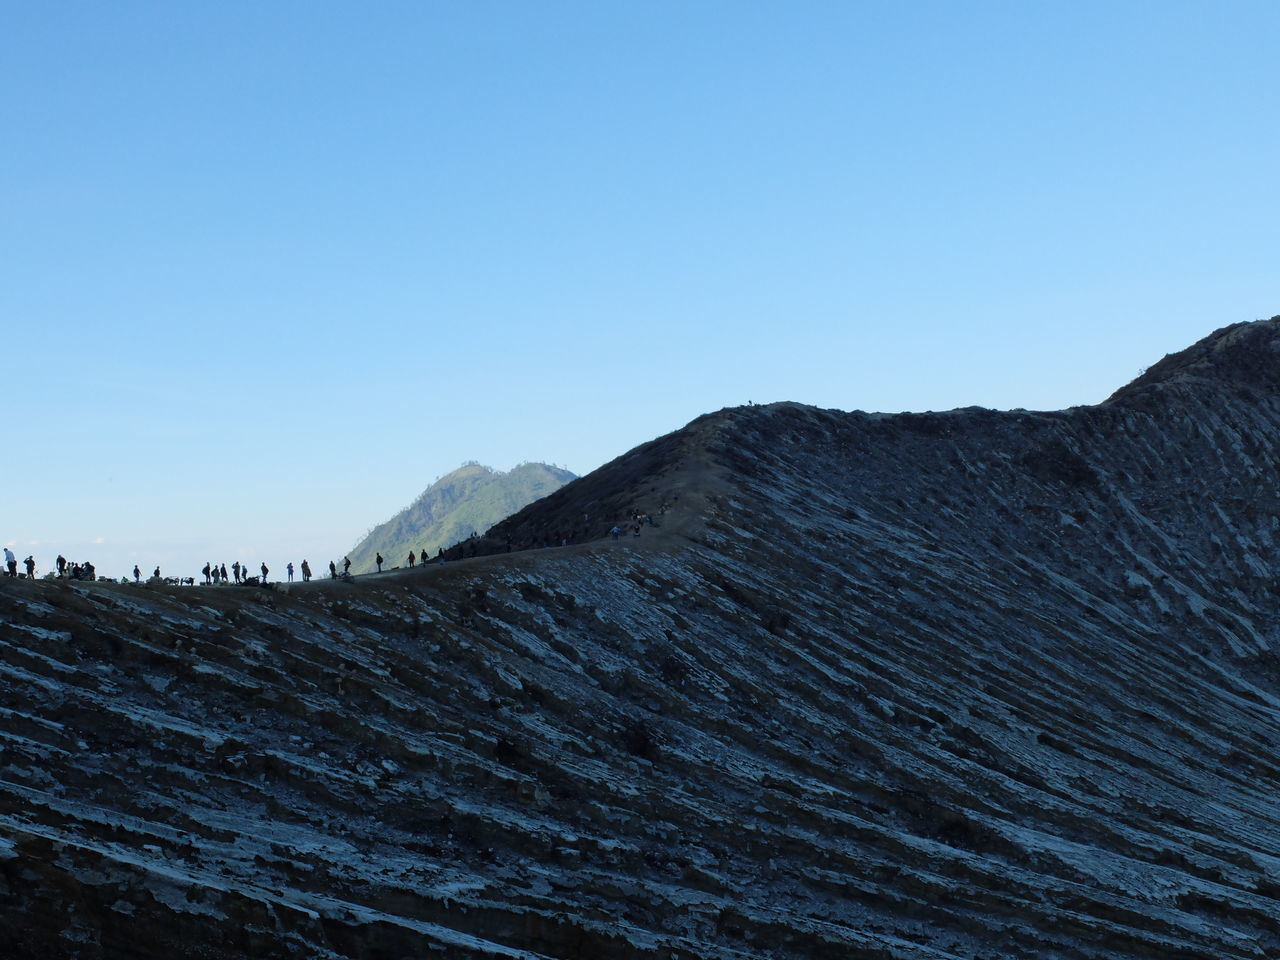 Trekking at sunrise on the Ijen Volcano, Indonesia. Beauty In Nature Day Geology Ijen Ijen Crater INDONESIA Kawah Ijen Landscape Mountain Nature No People Outdoors Sky Sunrise Tranquil Scene Trek Trekking Volcano